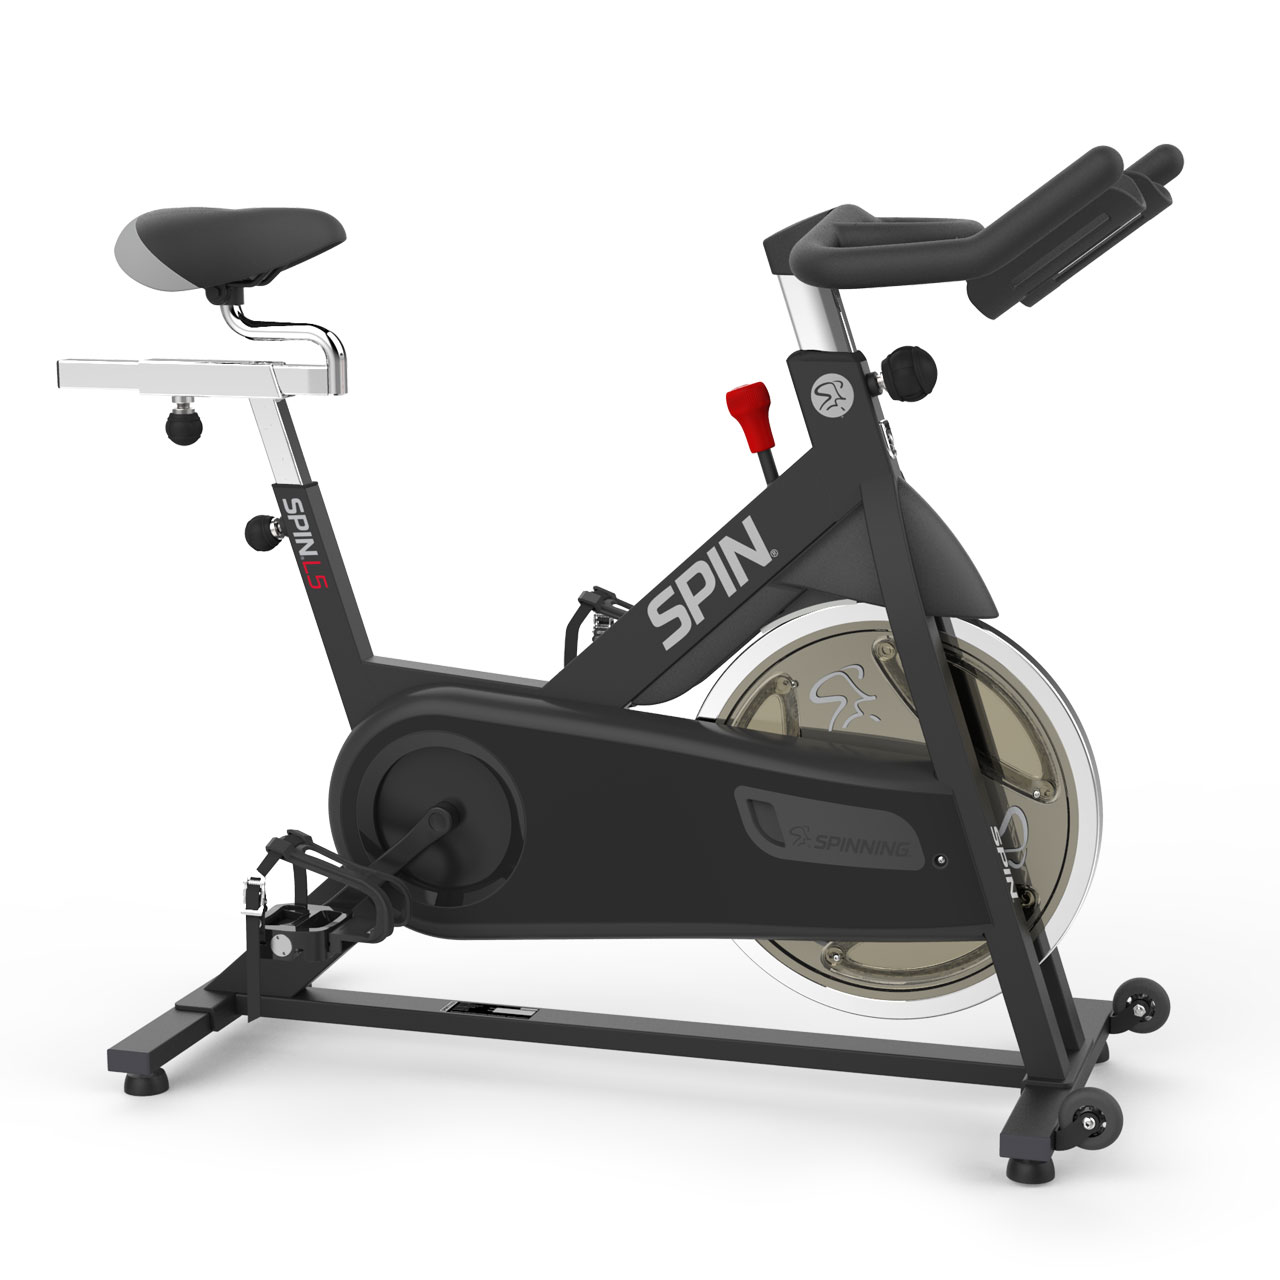 SPINNER L5 Spin Bike x 4 DVDs Exercise Bike by Mad Dogg